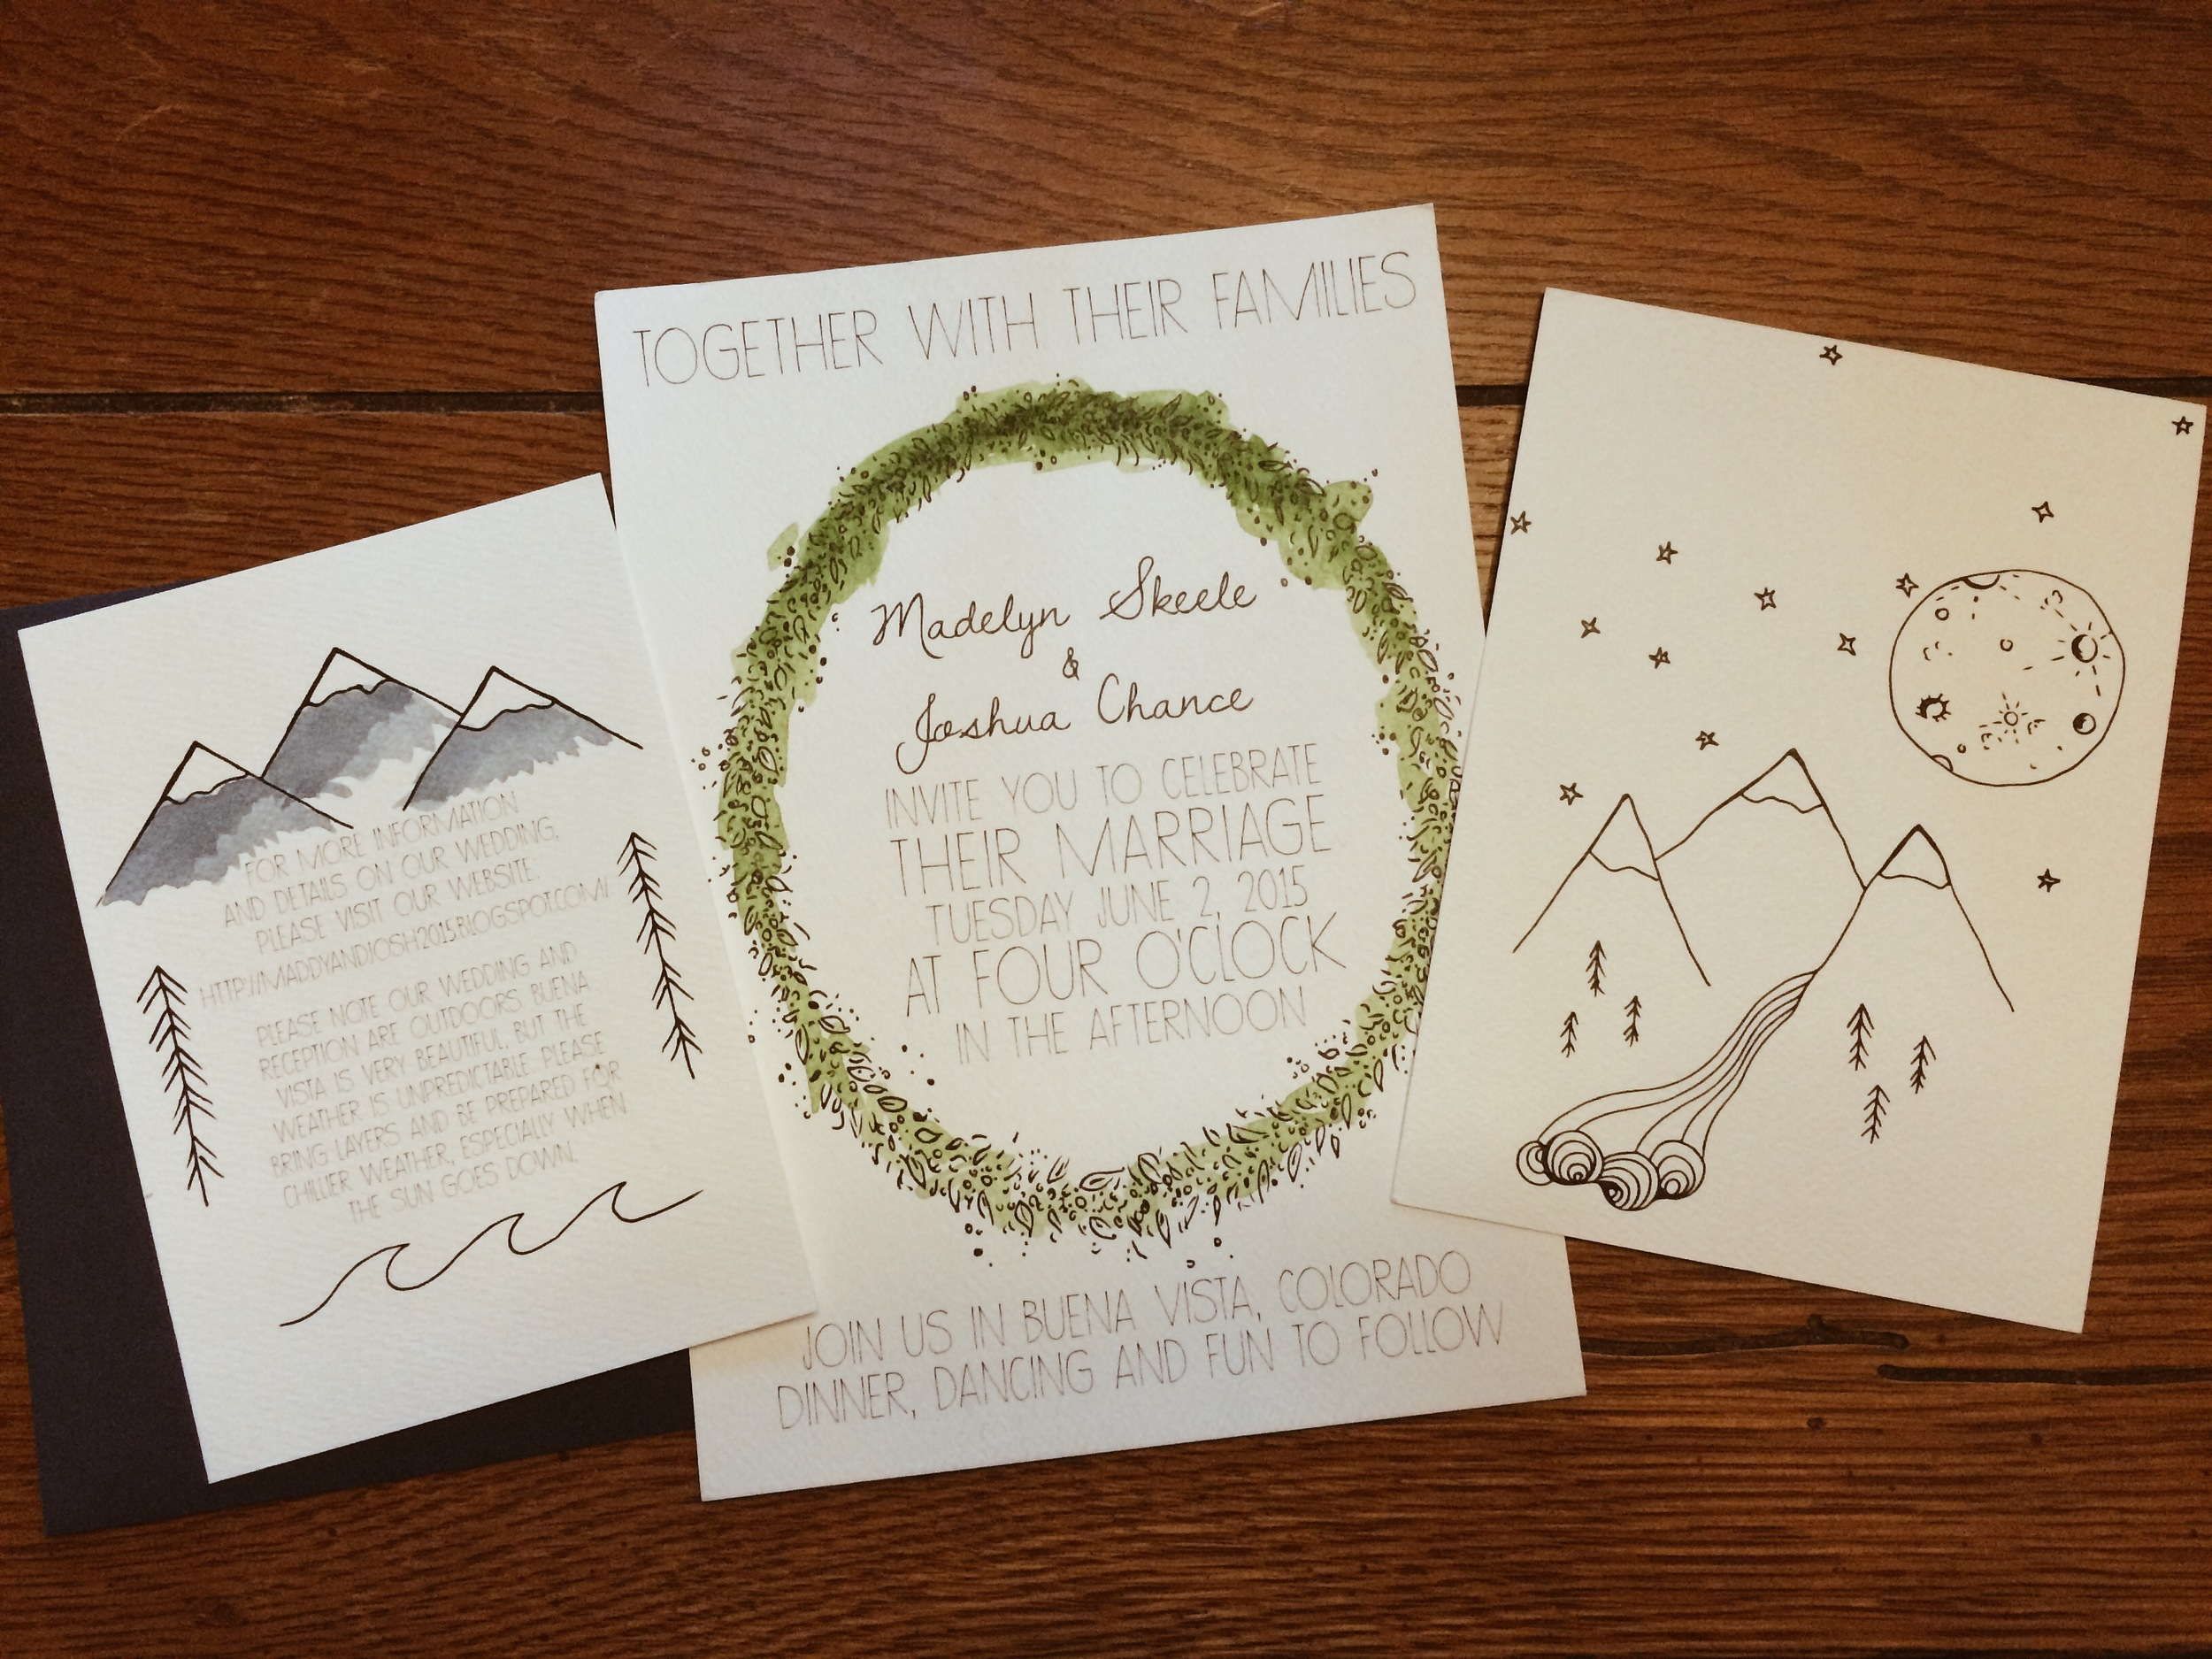 After consulting with Maddy, I hand drew the images and designed the invite package. After having them printed by our local printer in Hawaii, Maddy and I hand painted each one with watercolor paints.